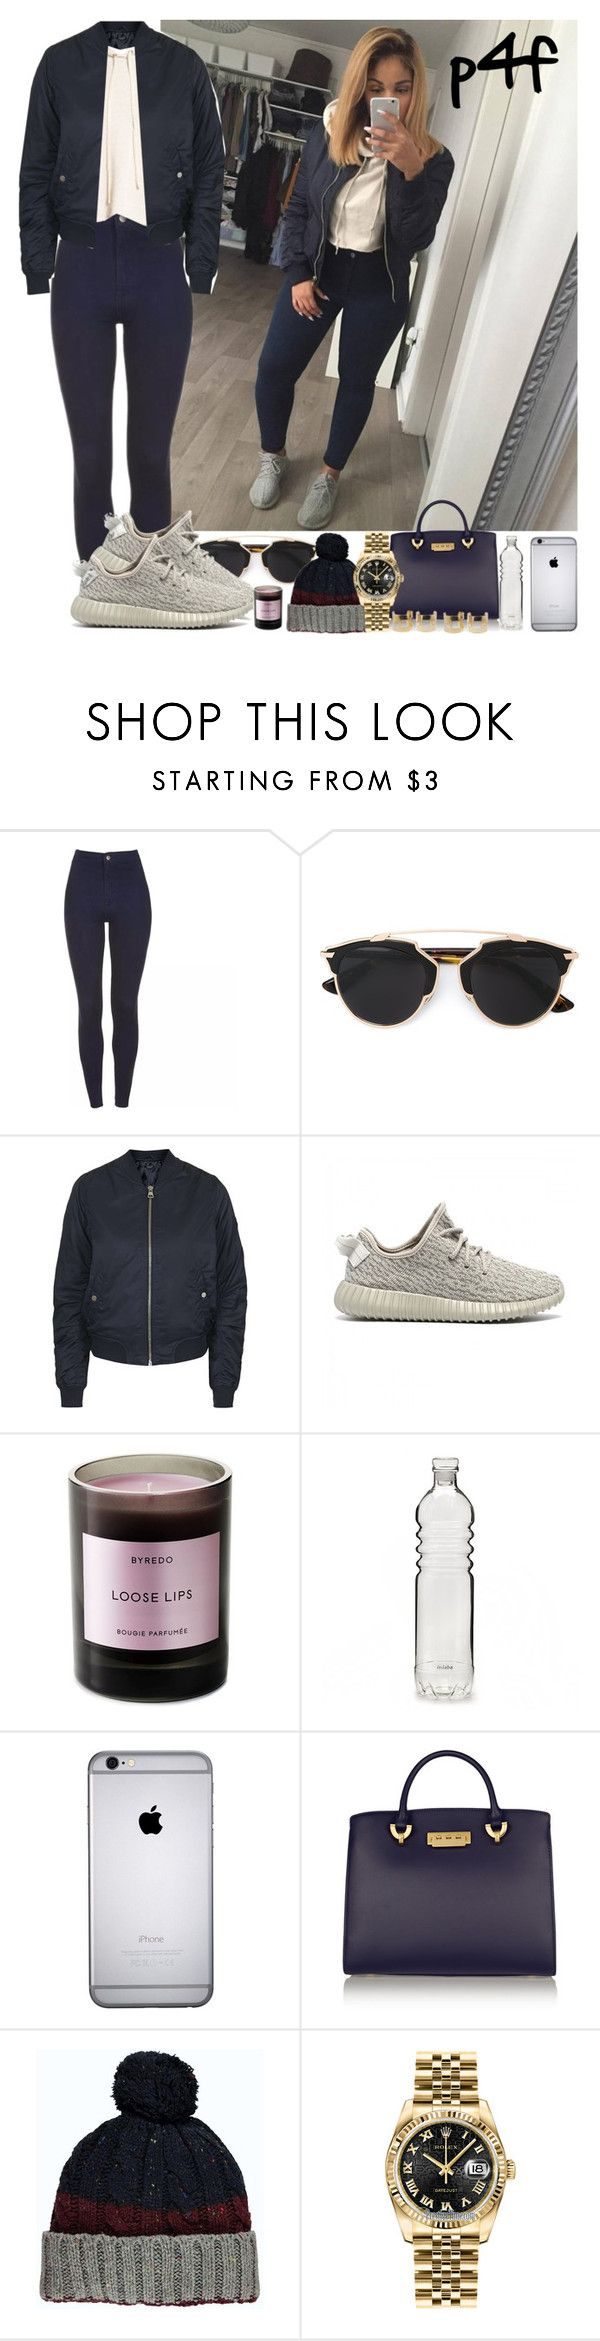 """""""Passion 4Fashion: GG"""" by shygurl1 ❤ liked on Polyvore featuring Christian Dior, Topshop, adidas Originals, Byredo, ZAC Zac Posen, Rolex, Wet Seal, women's clothing, women's fashion and women"""